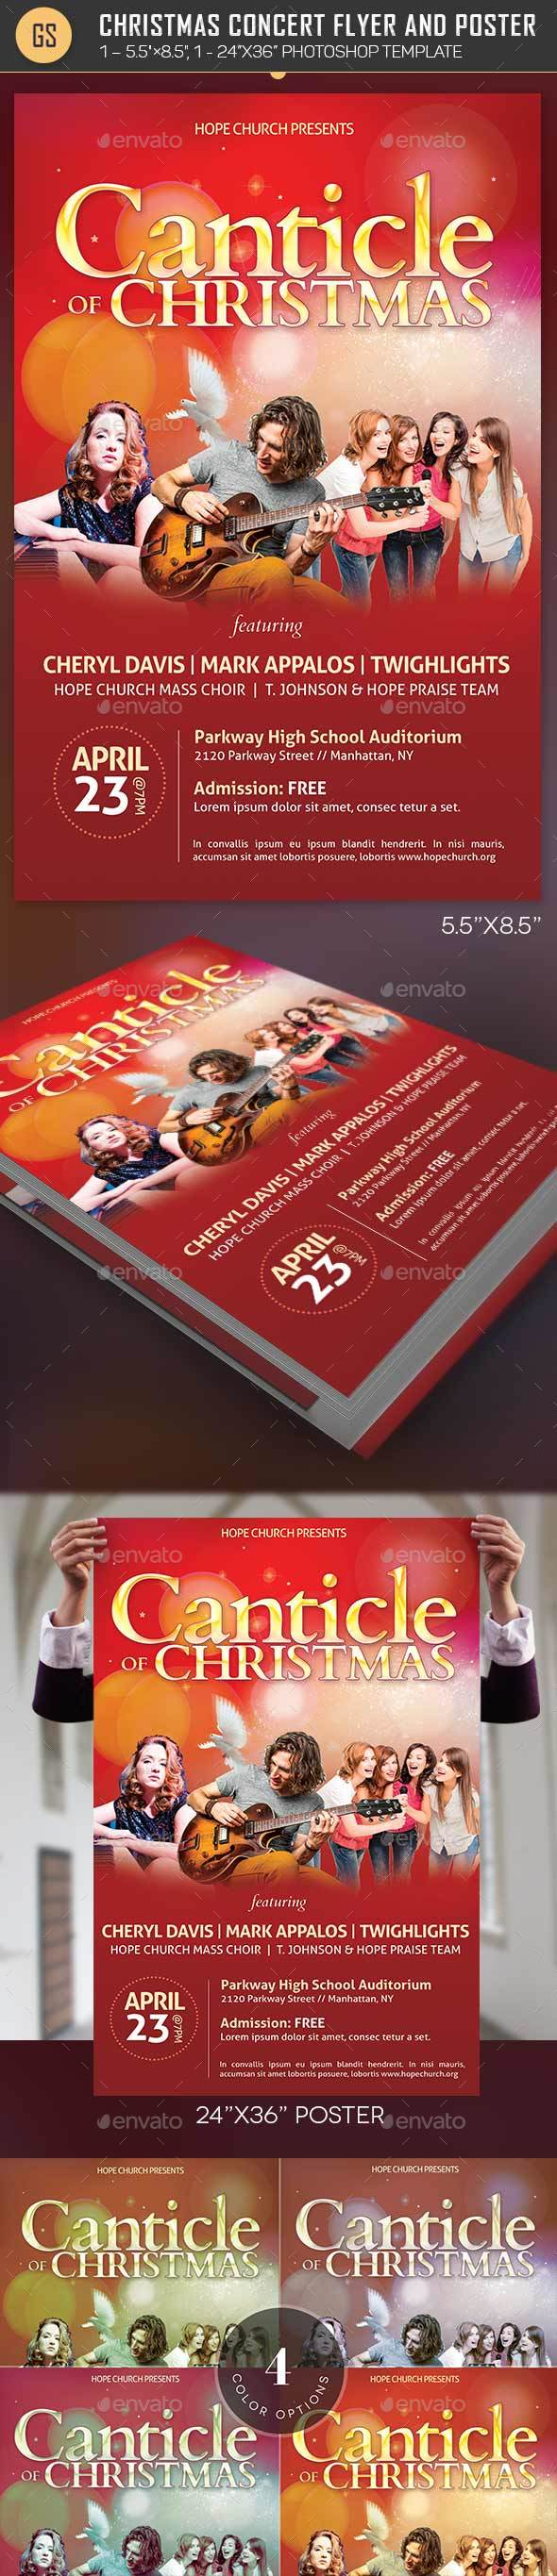 Christmas Concert Flyer Poster Template - Holidays Events